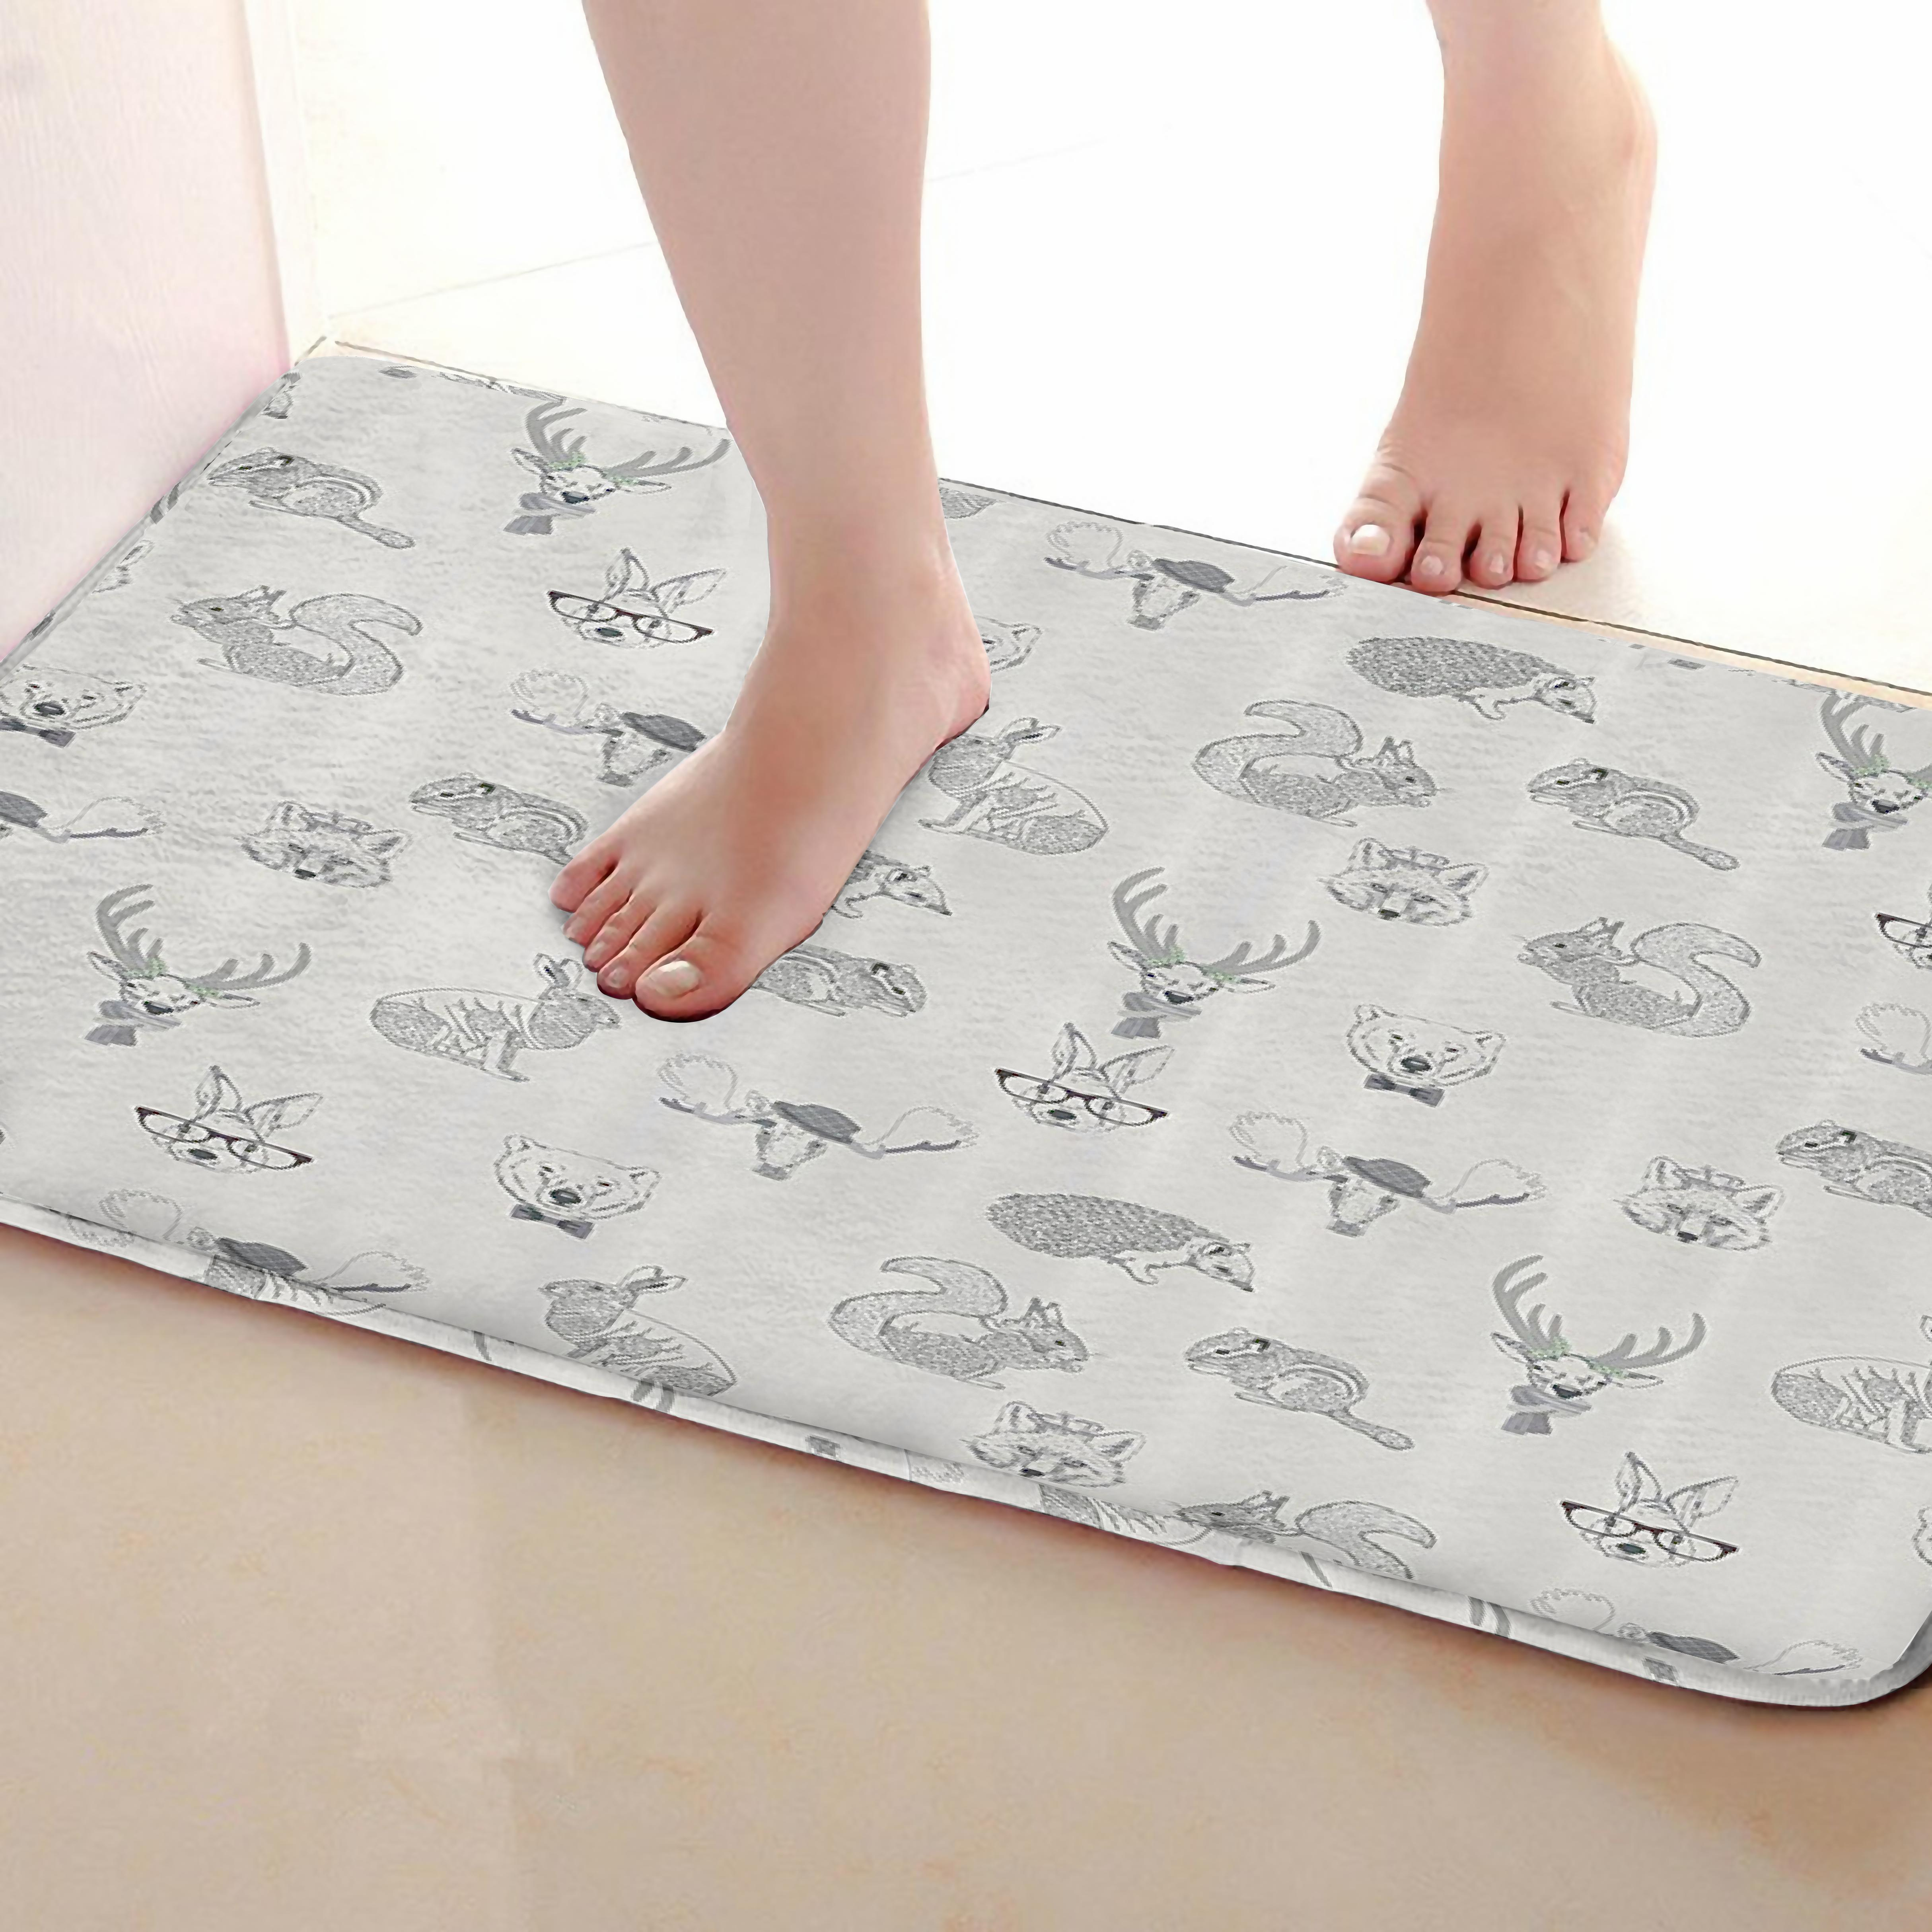 Animal Style Bathroom Mat,Funny Anti Skid Bath Mat,Shower Curtains Accessories,Matching Your Shower Curtain